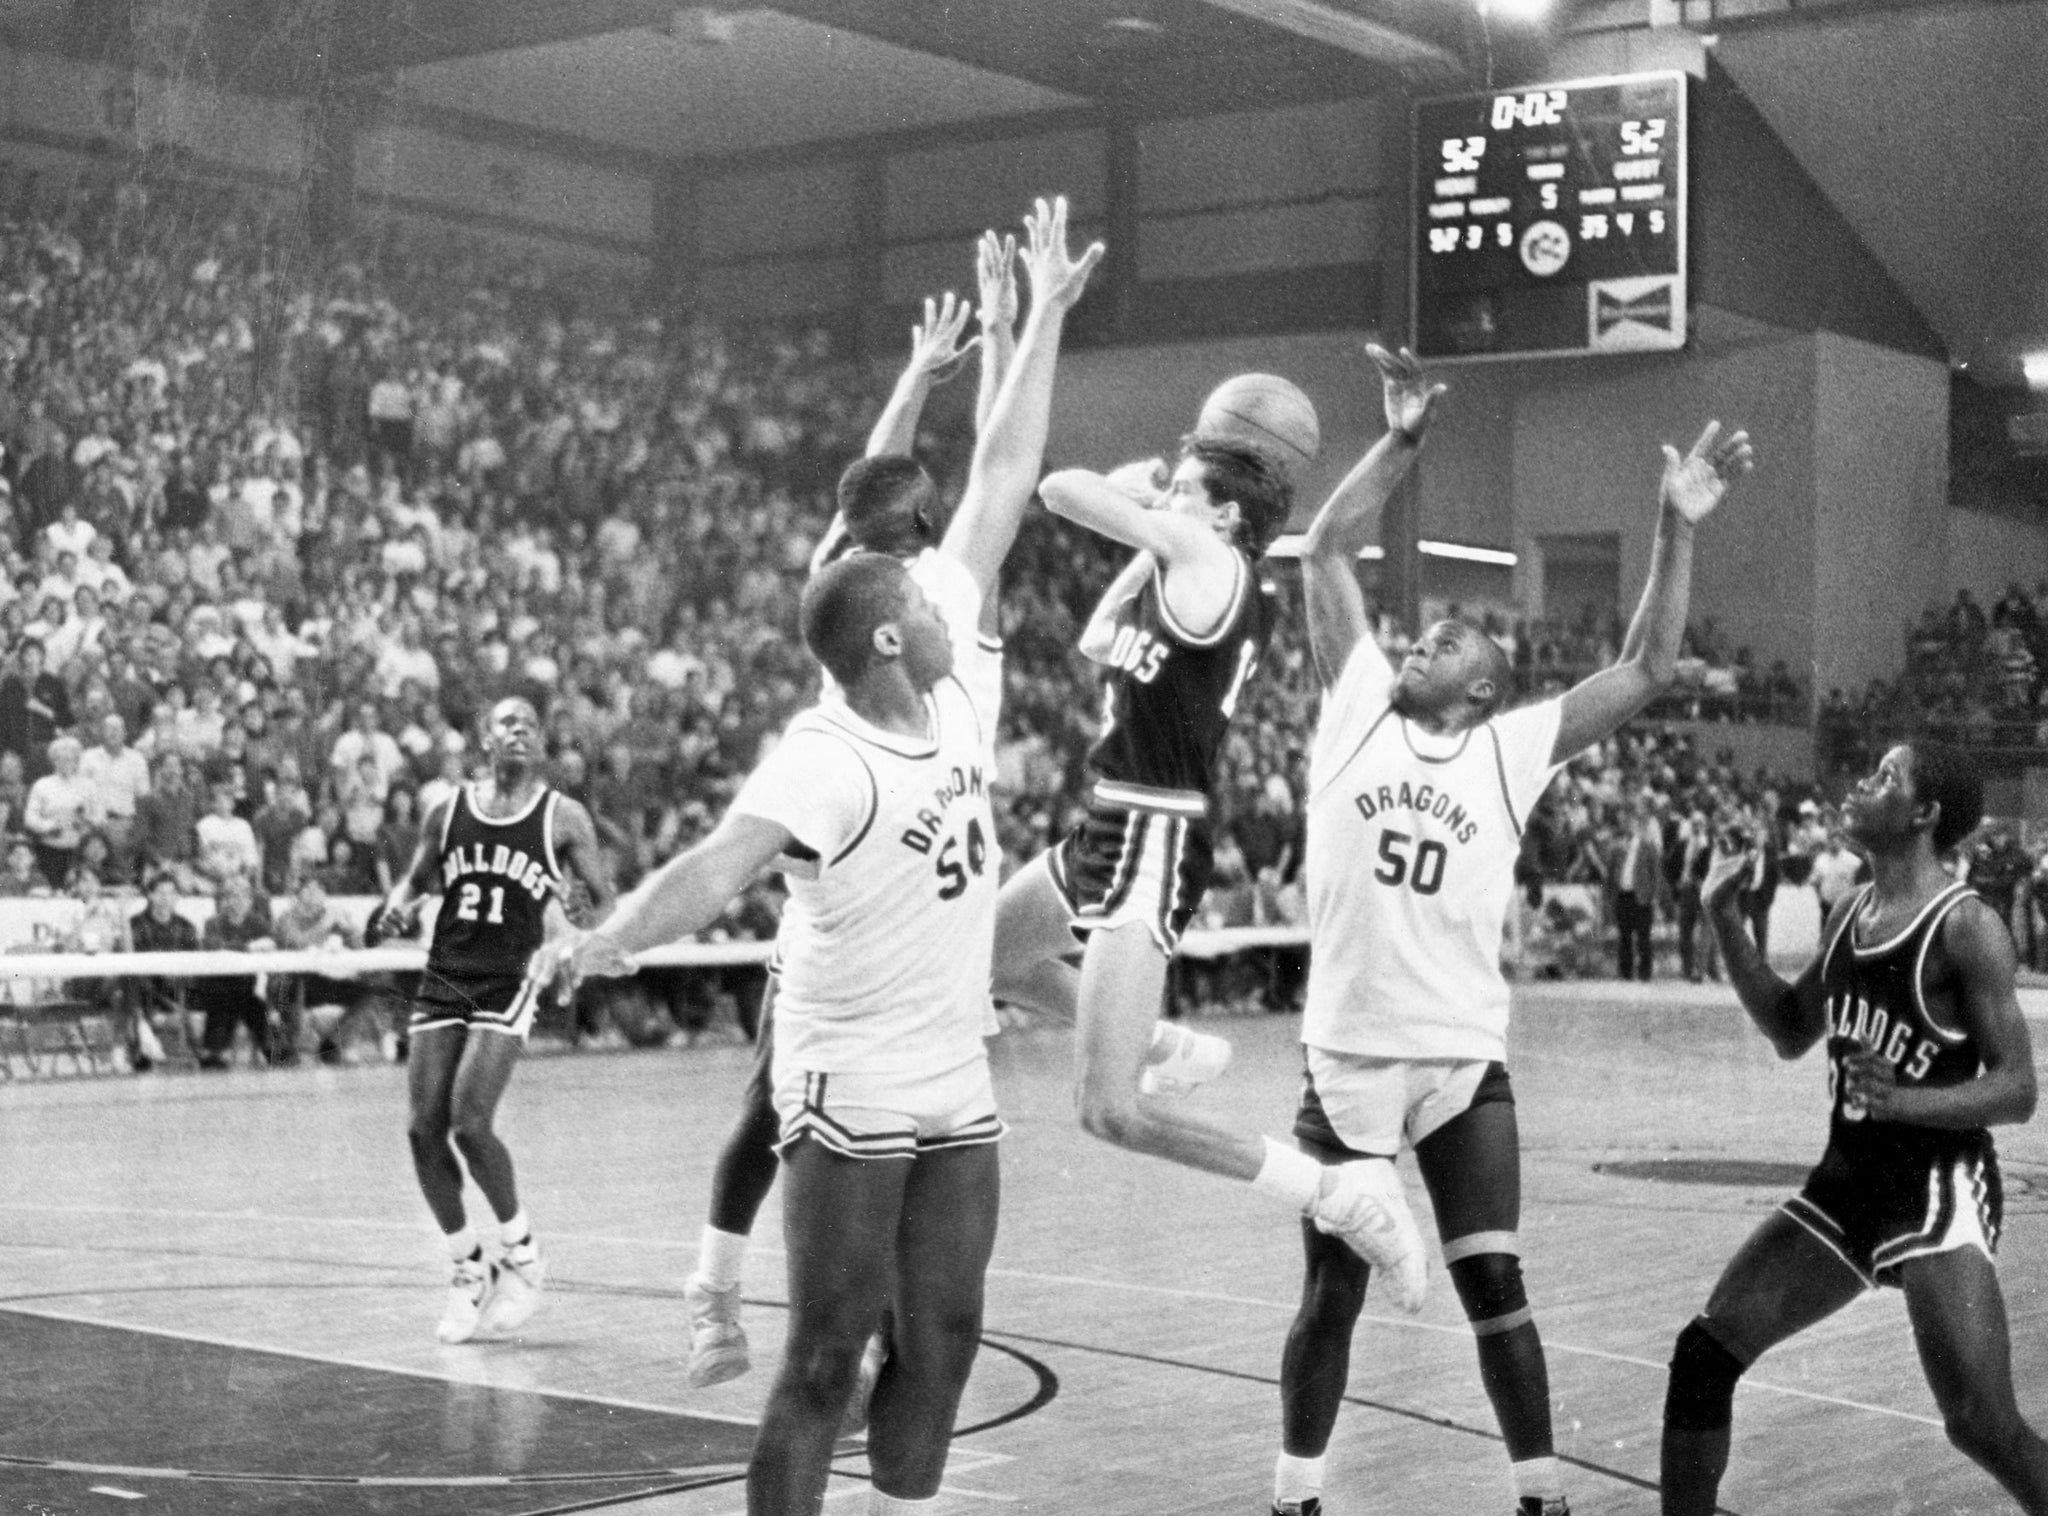 MASH's Mike Pero hitting the game winning shot against Allderdice in the PIAA Class AAAA West final (state semi-final) at the Erie Civic Center, 1987. -- Courtesy of Meadville Tribune